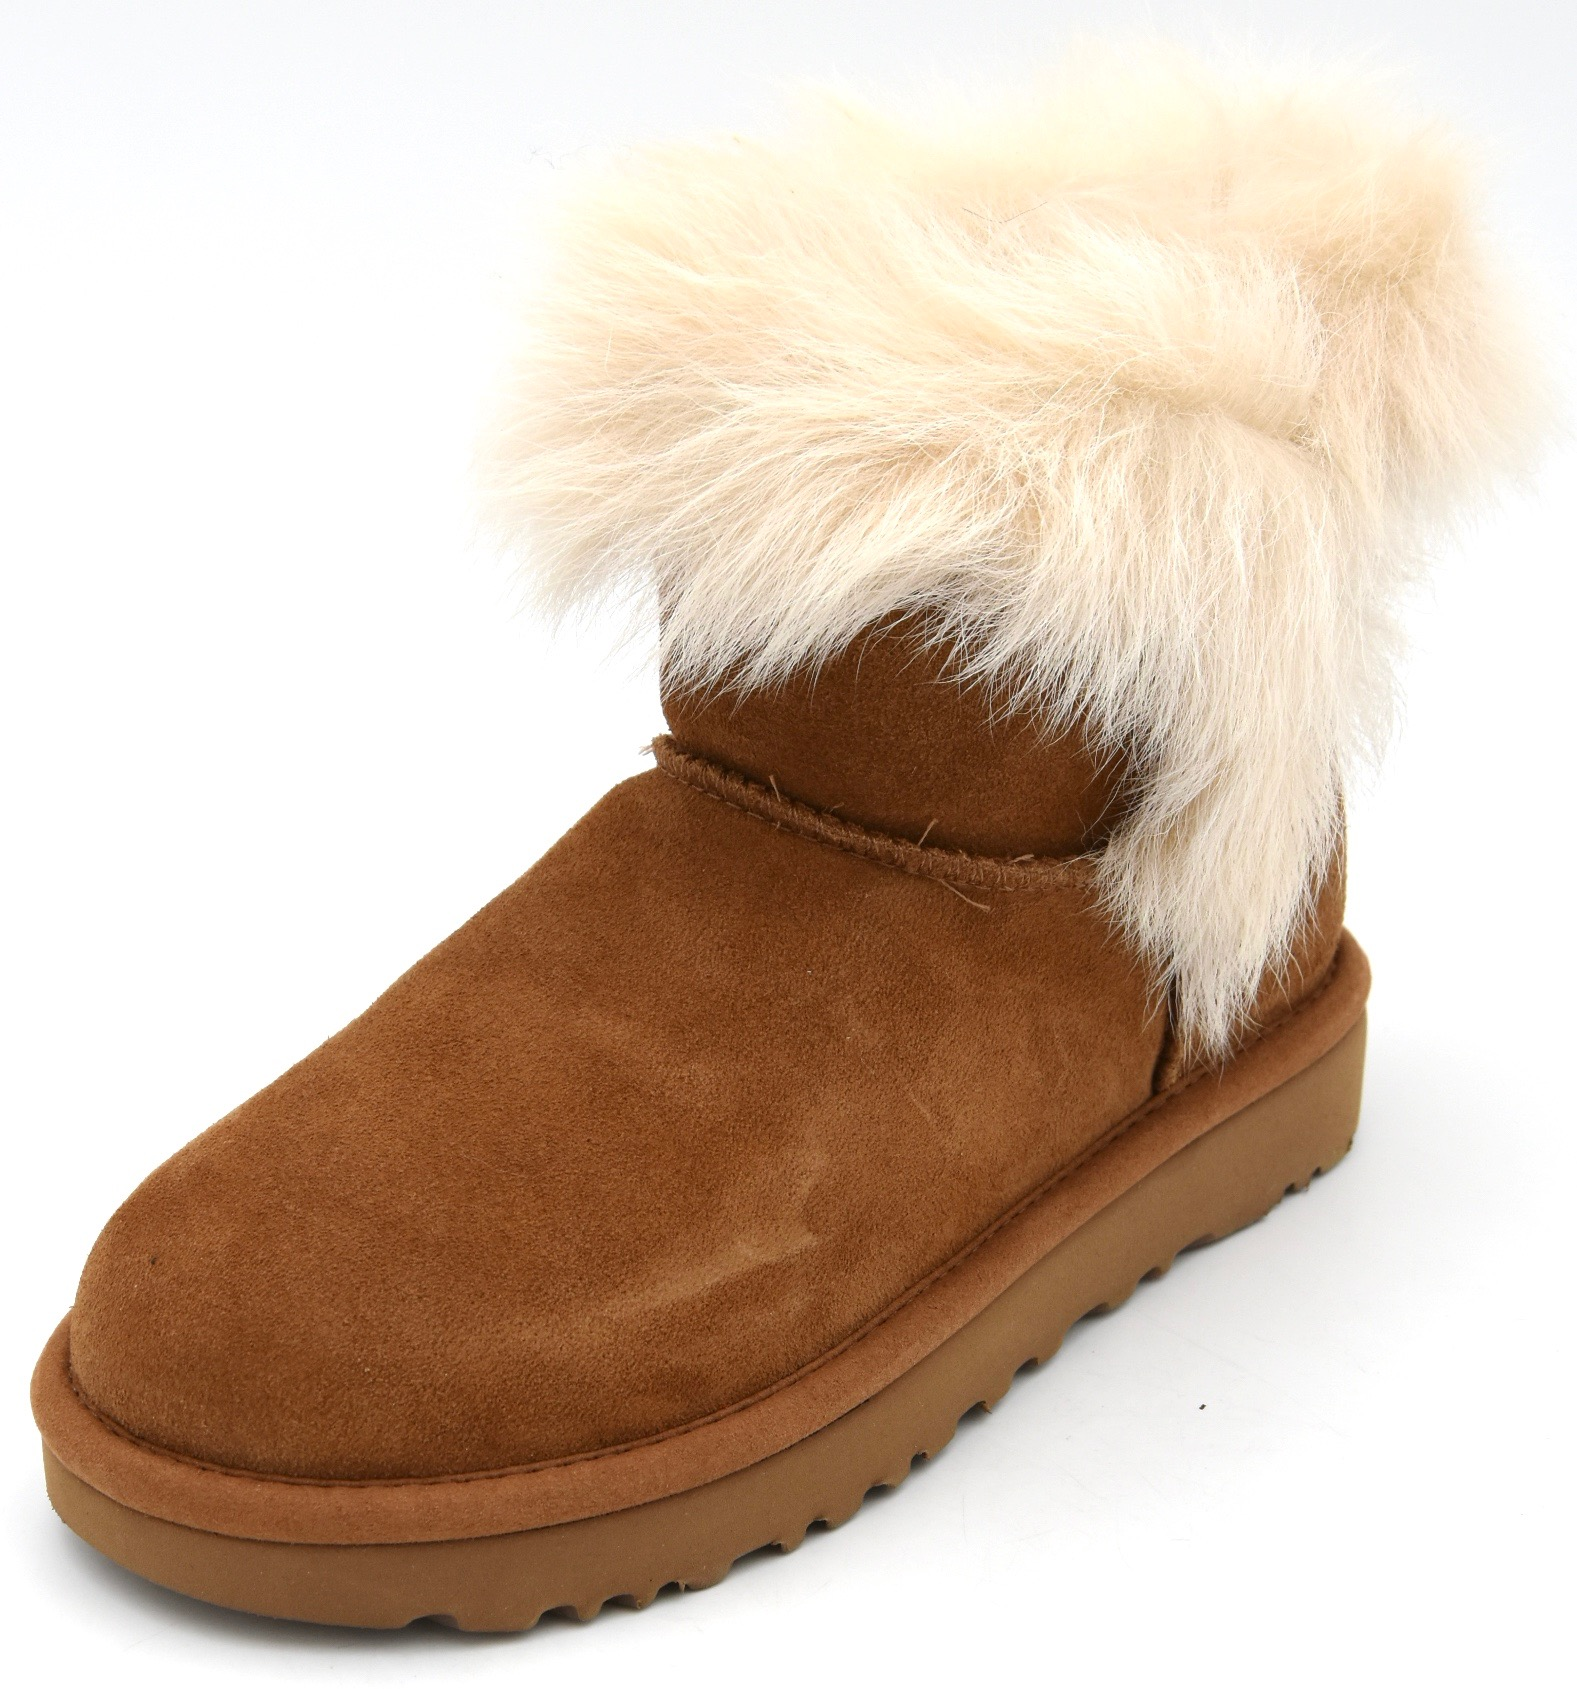 1e6b73ce49e Details about UGG AUSTRALIA WOMAN ANKLE BOOTS BOOTIES WINTER SUEDE CODE W  MILLA 1018303 W